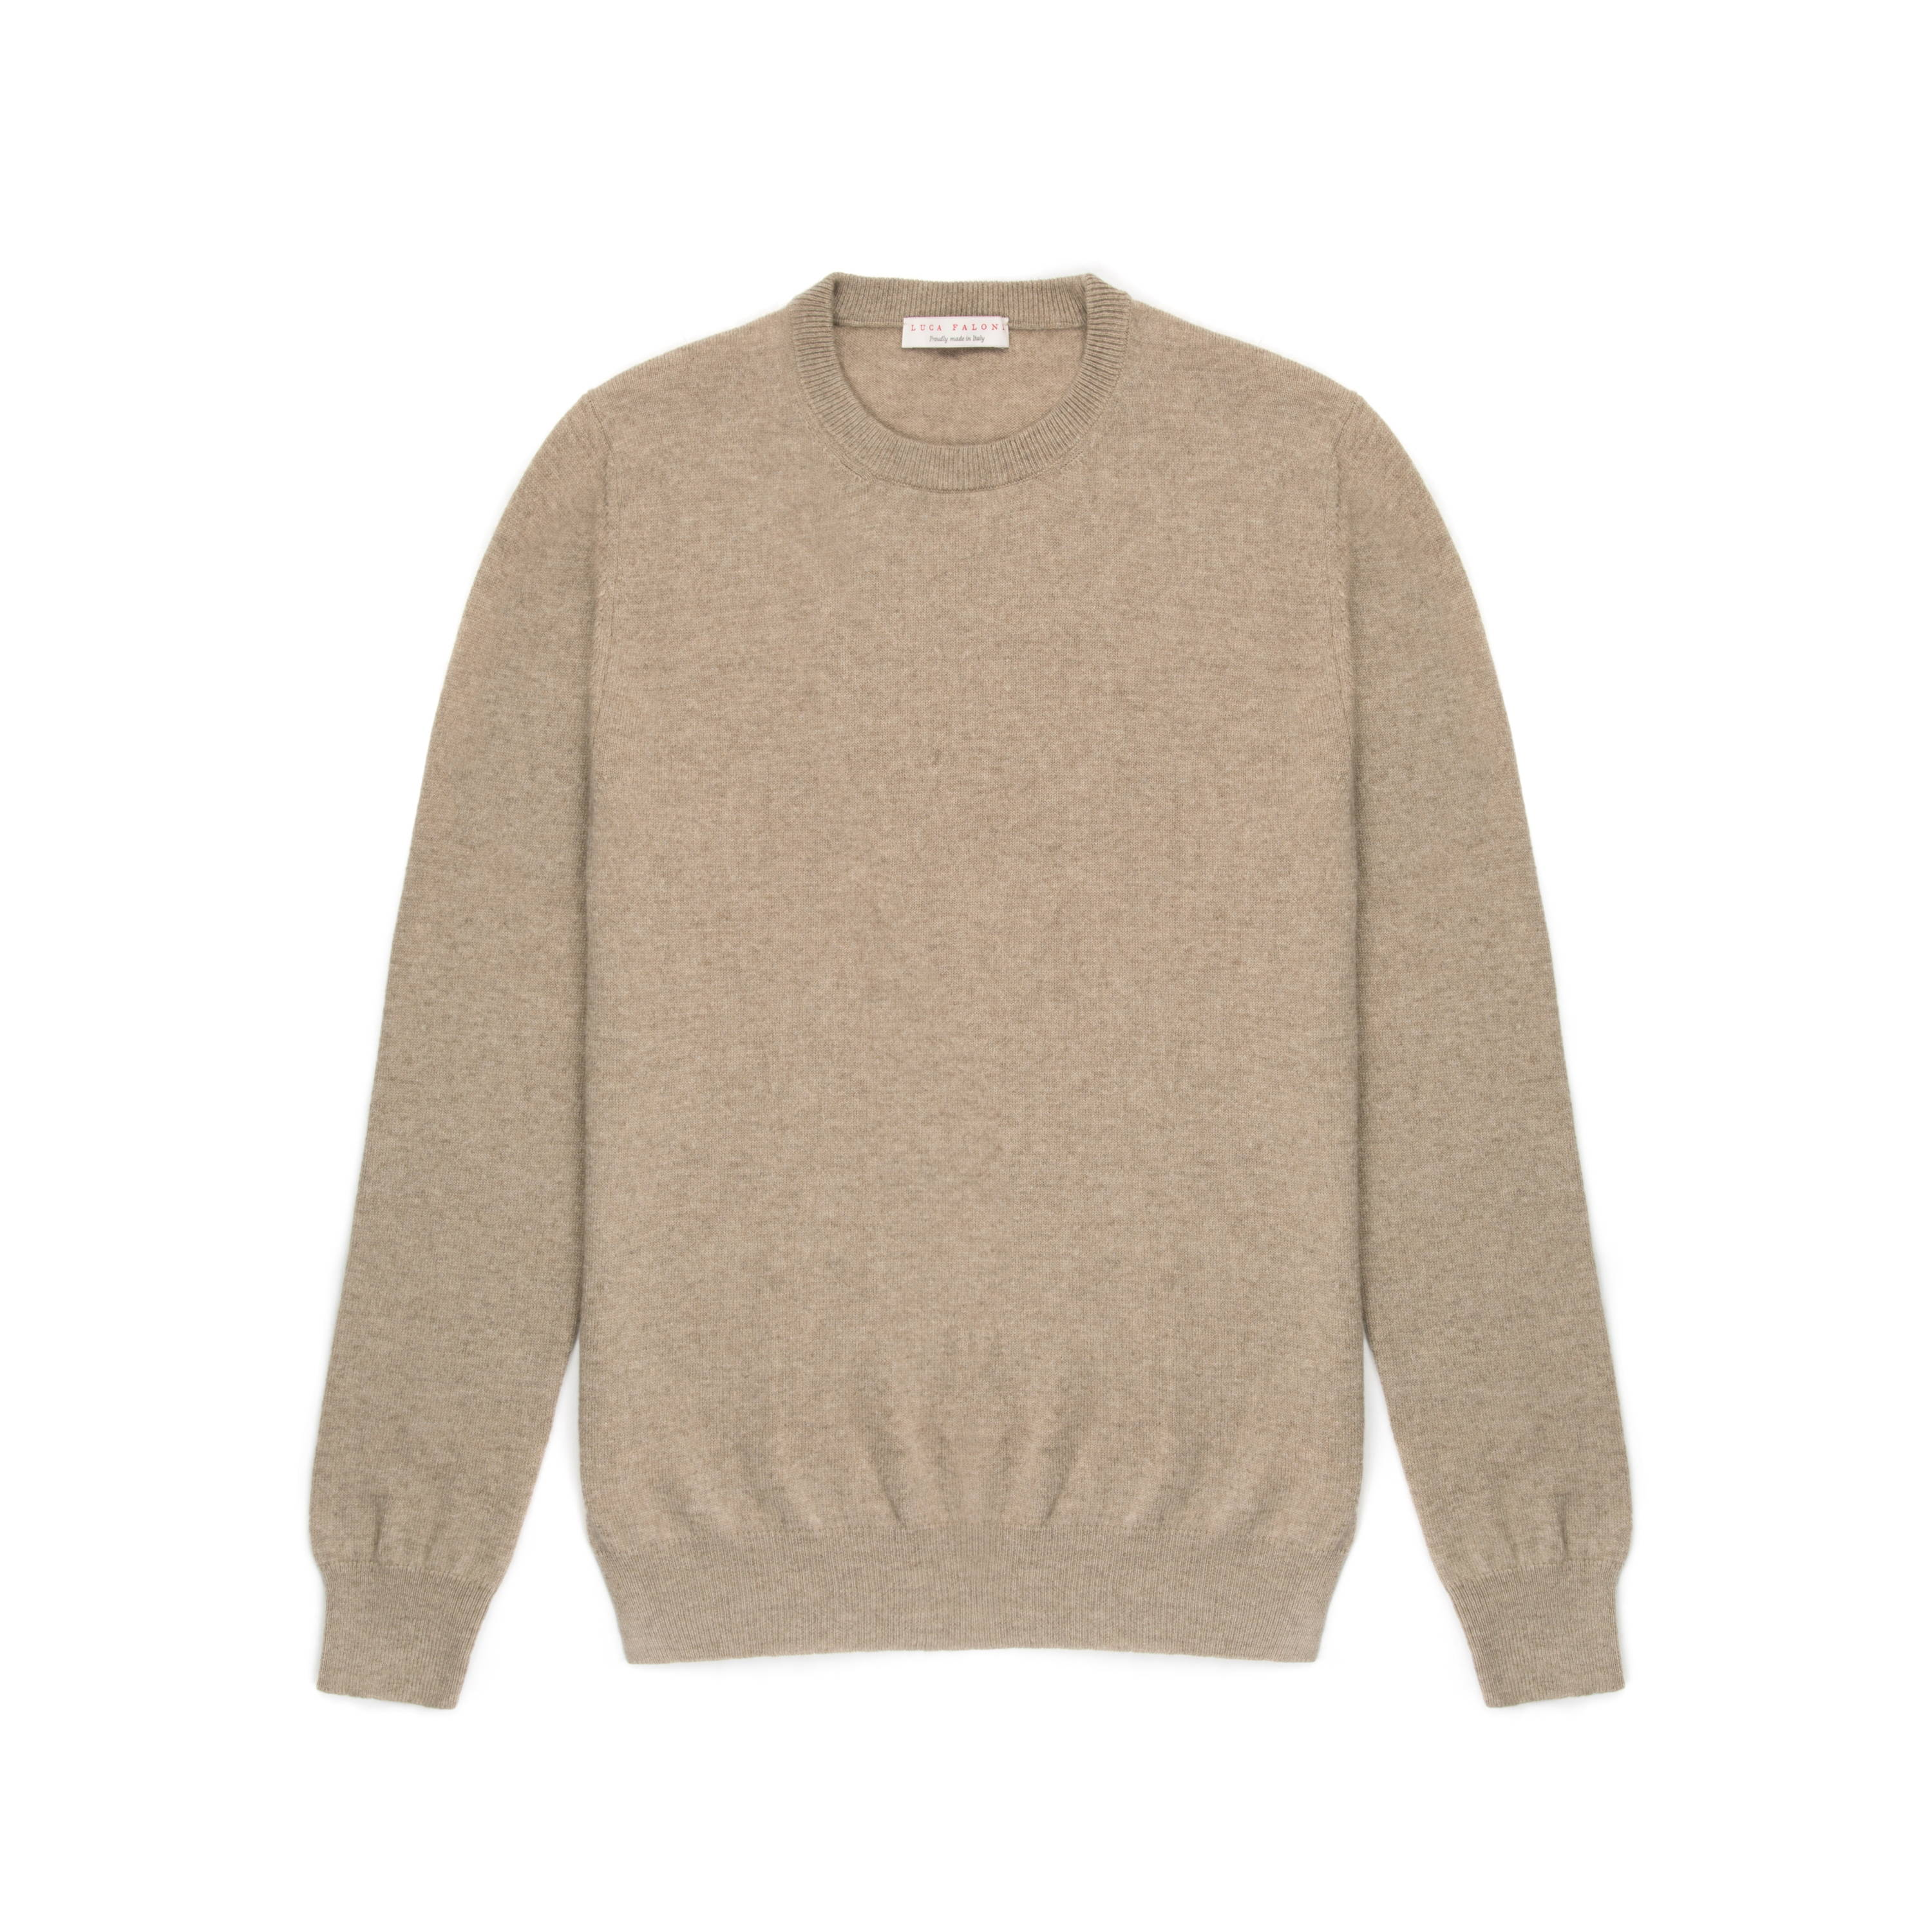 Luca Faloni Camel Beige Pure Cashmere Crew Neck Made in Italy